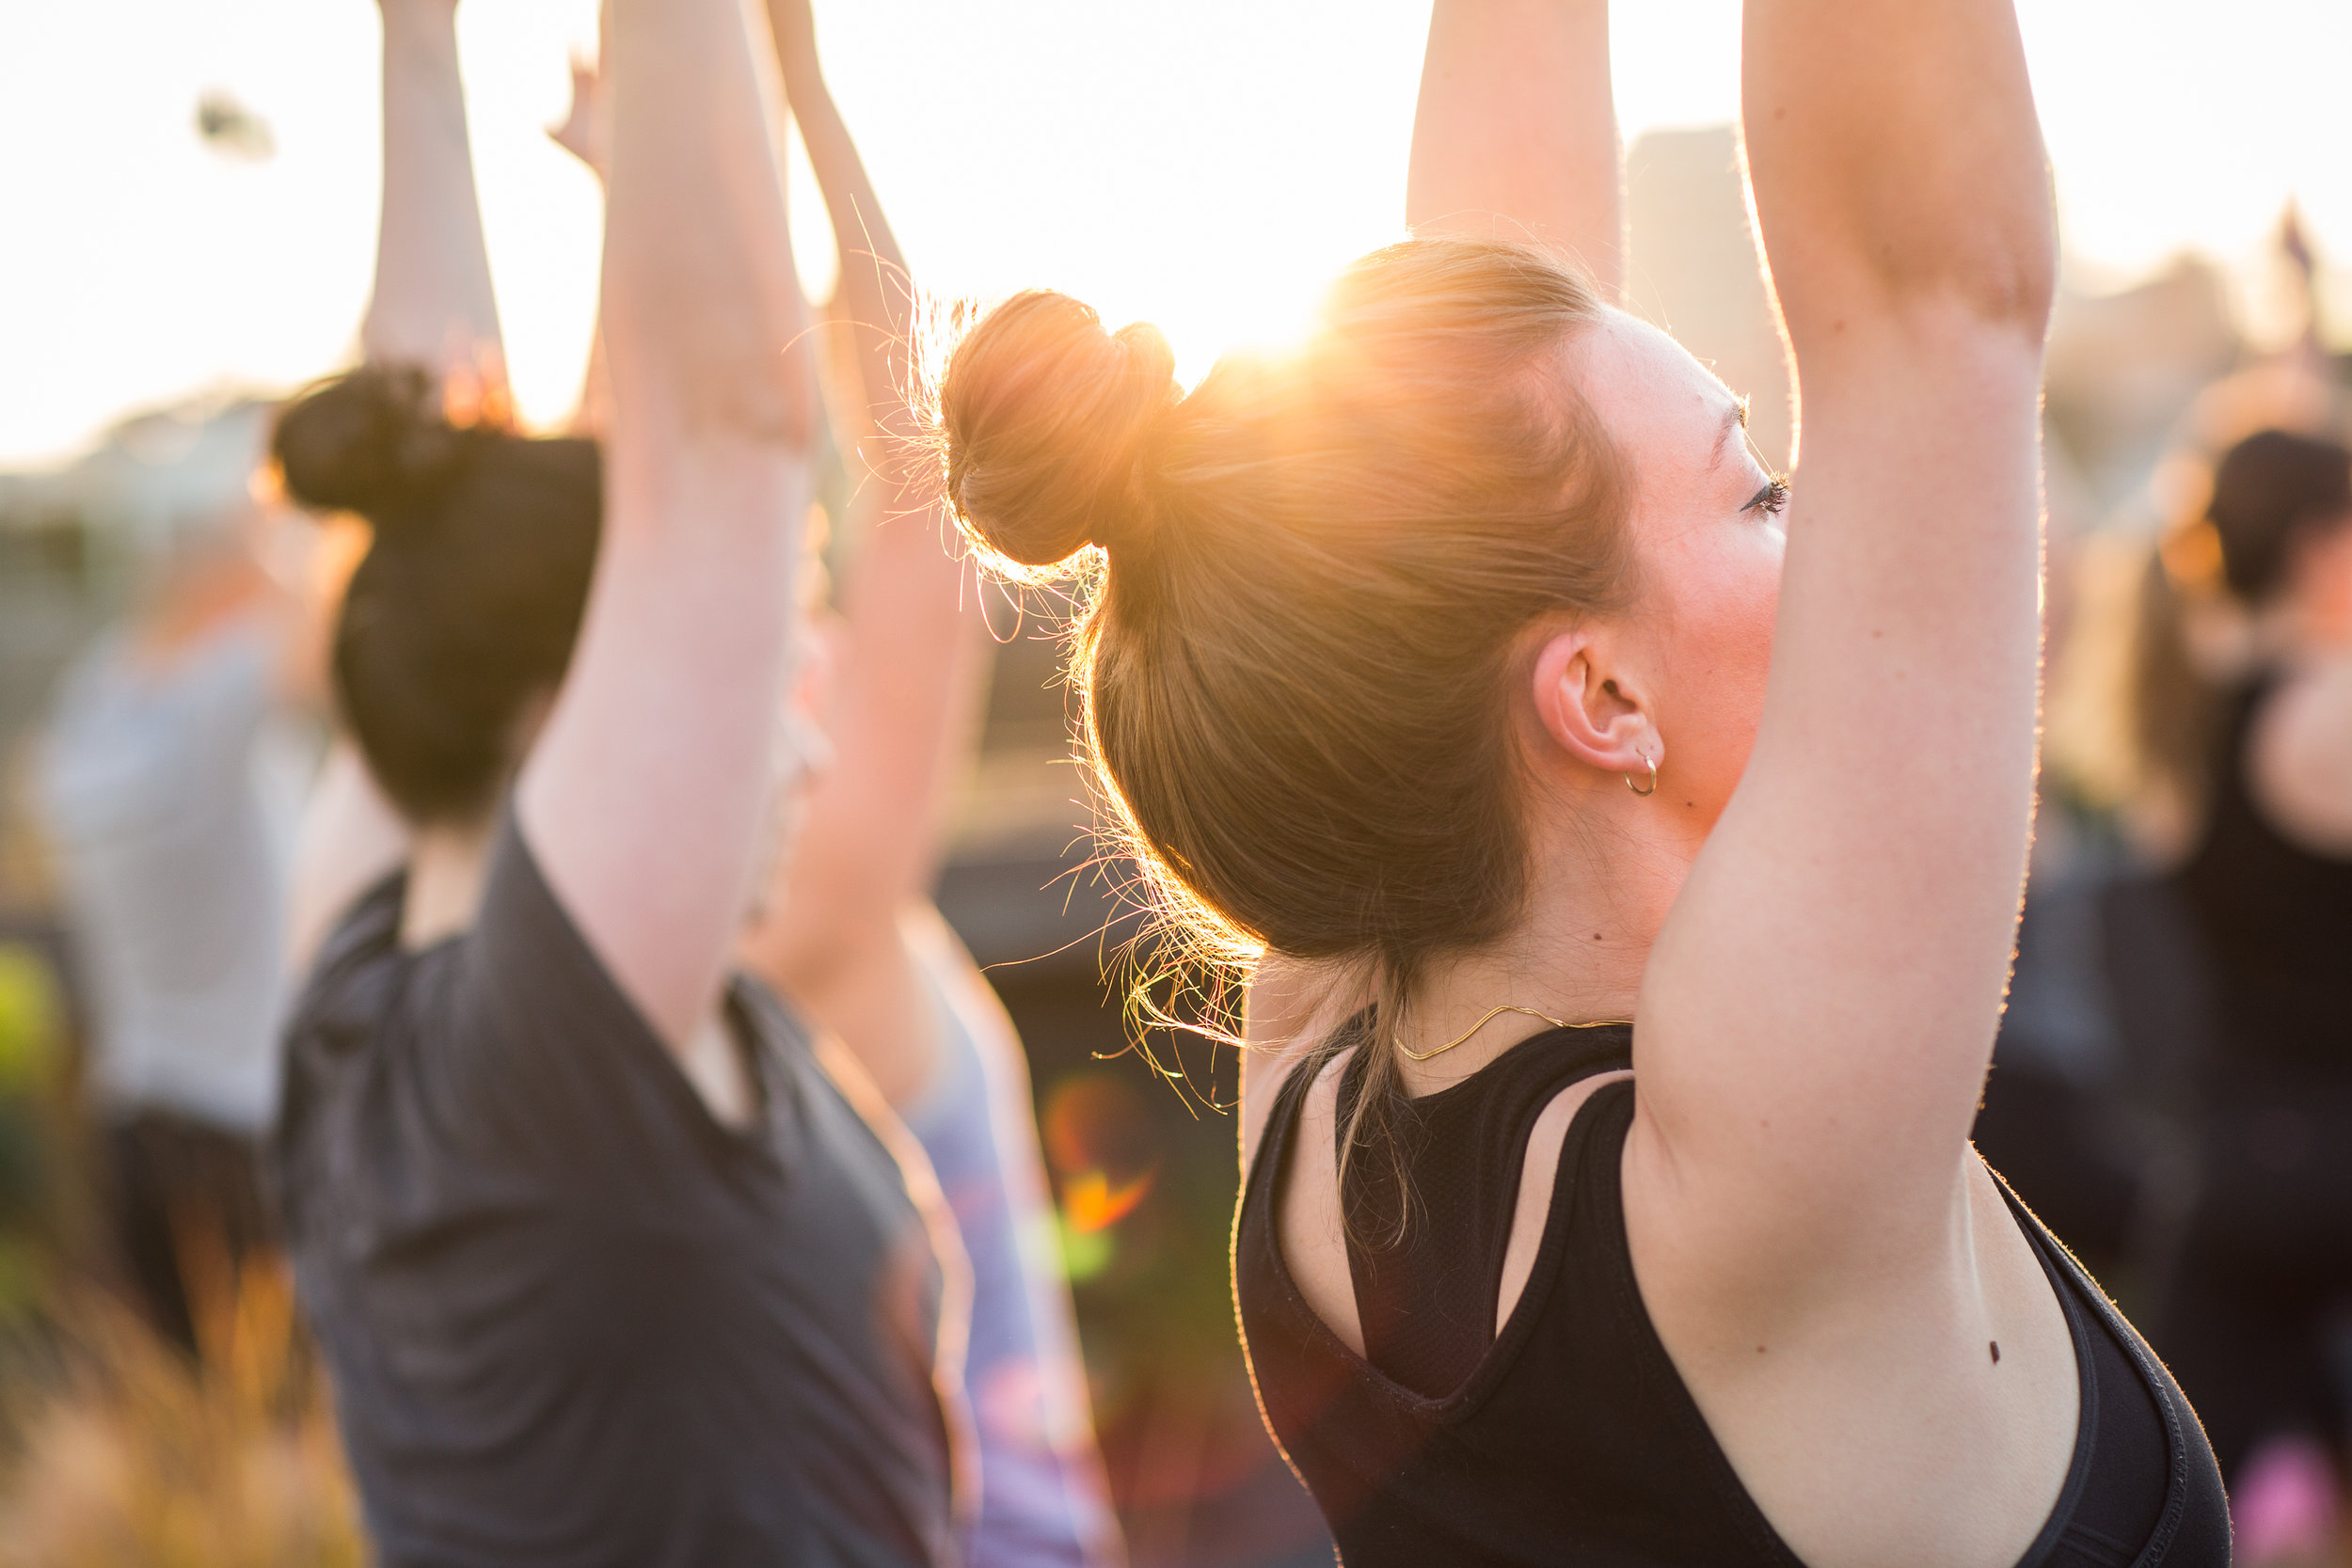 Rise'n'shine @ Coq D'argent - Thursday 07:45 - 08:30Wake up with us over looking the City of London for an energising rise'n'shine flow session.An open level class with plenty of variations to suit the yoga virgin, rookie or pro.£12 Single Pass*(£10 when booked with 4x class pass)Address: Coq D'argent, 1 Poultry, London EC2R 8EJBOOK HERE!